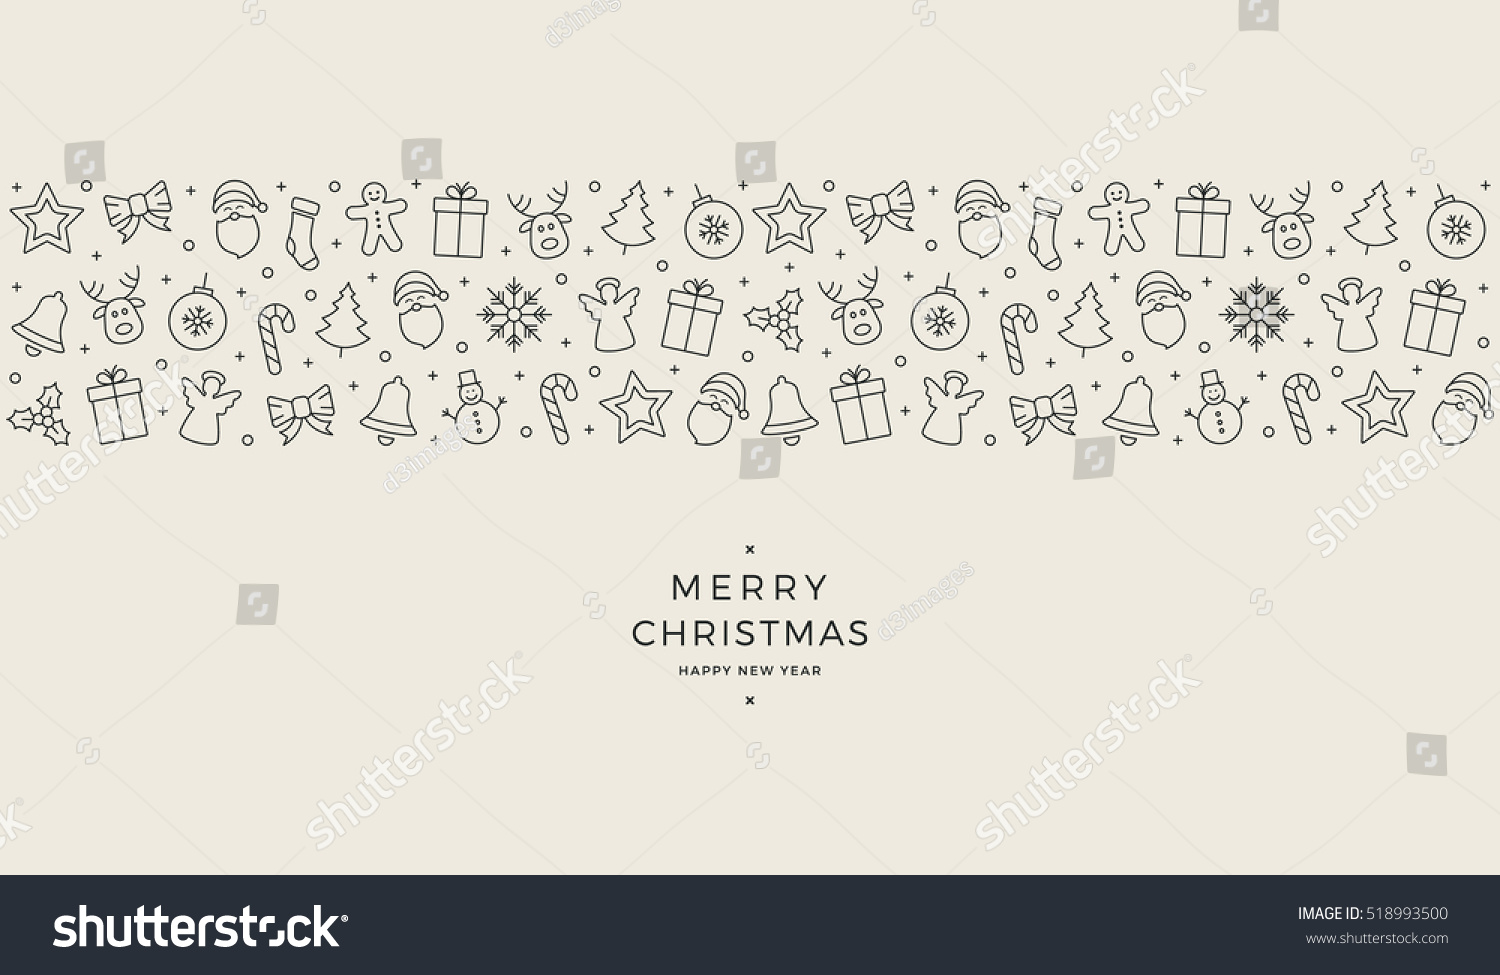 christmas element icons banner background #518993500